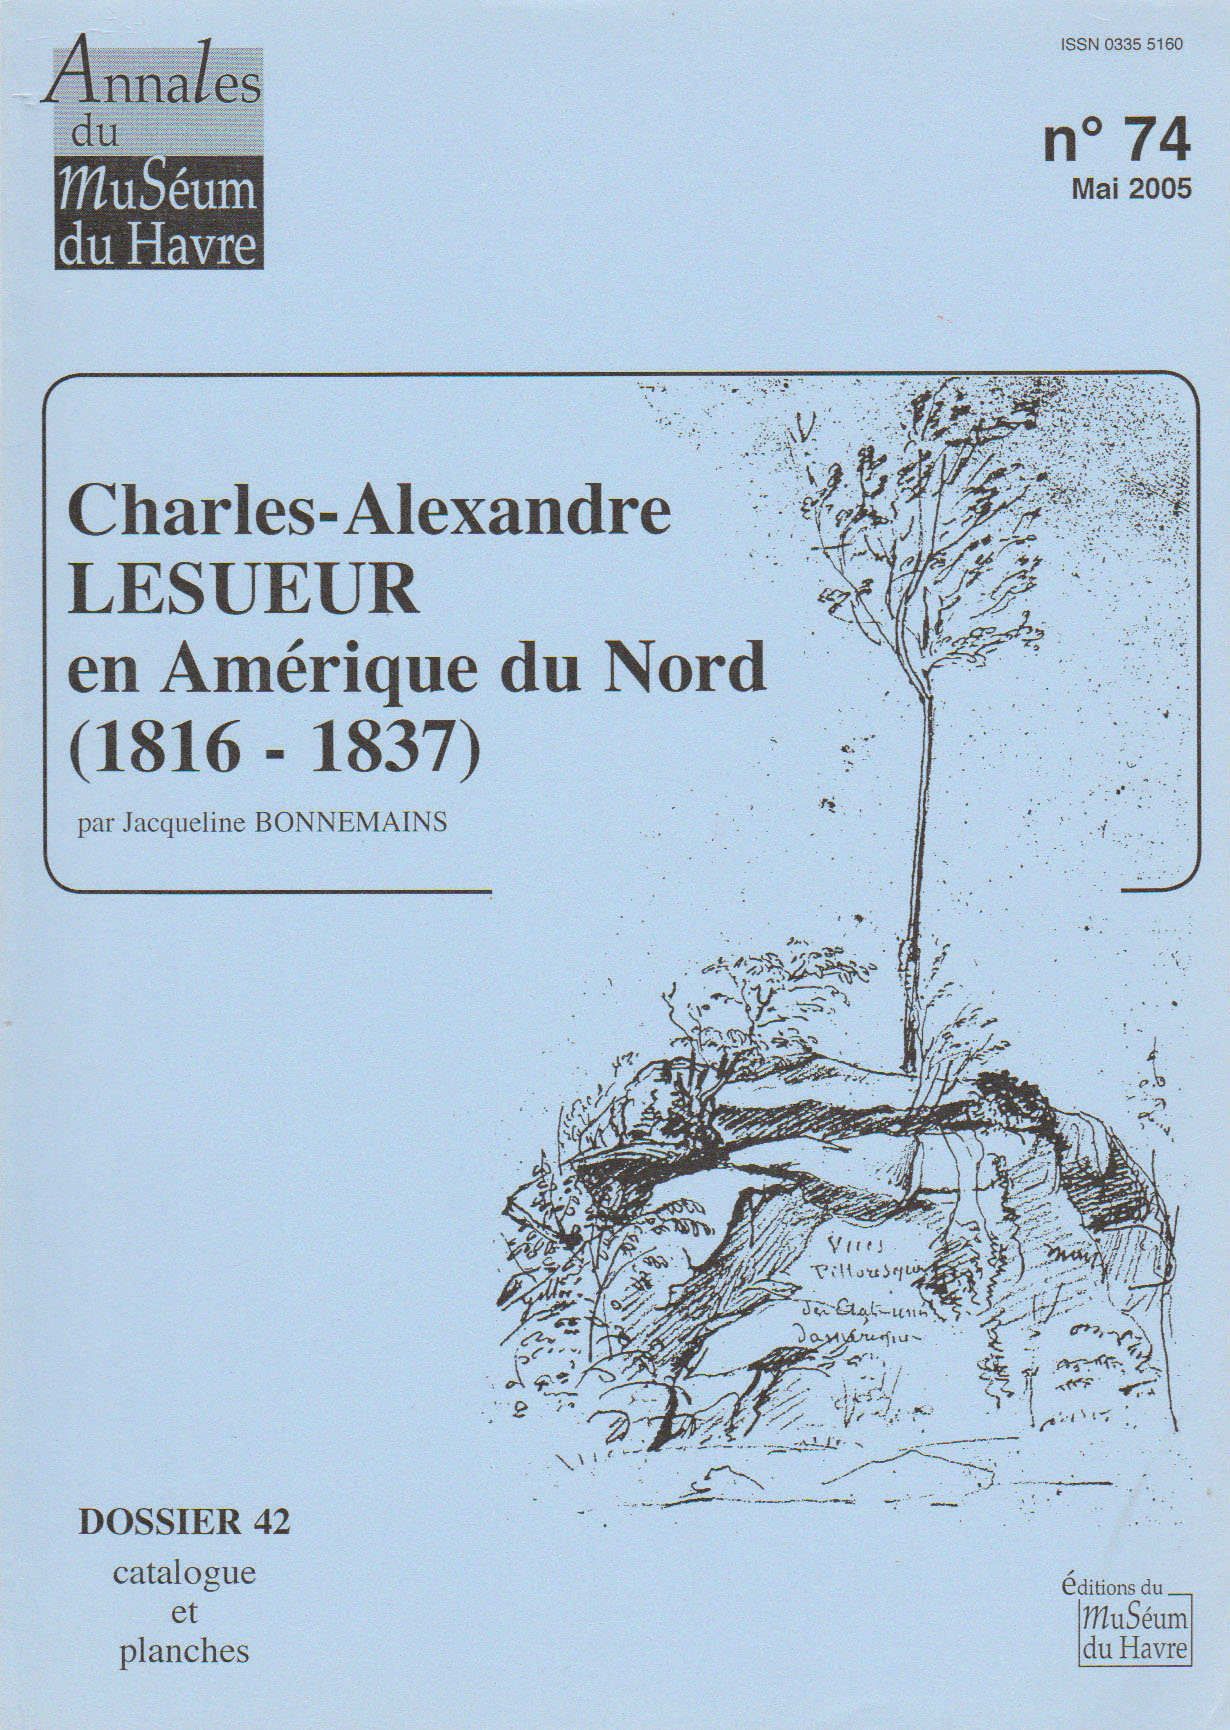 Cover of catalogue 42, Lesueur in North America, by Jacqueline Bonnemains